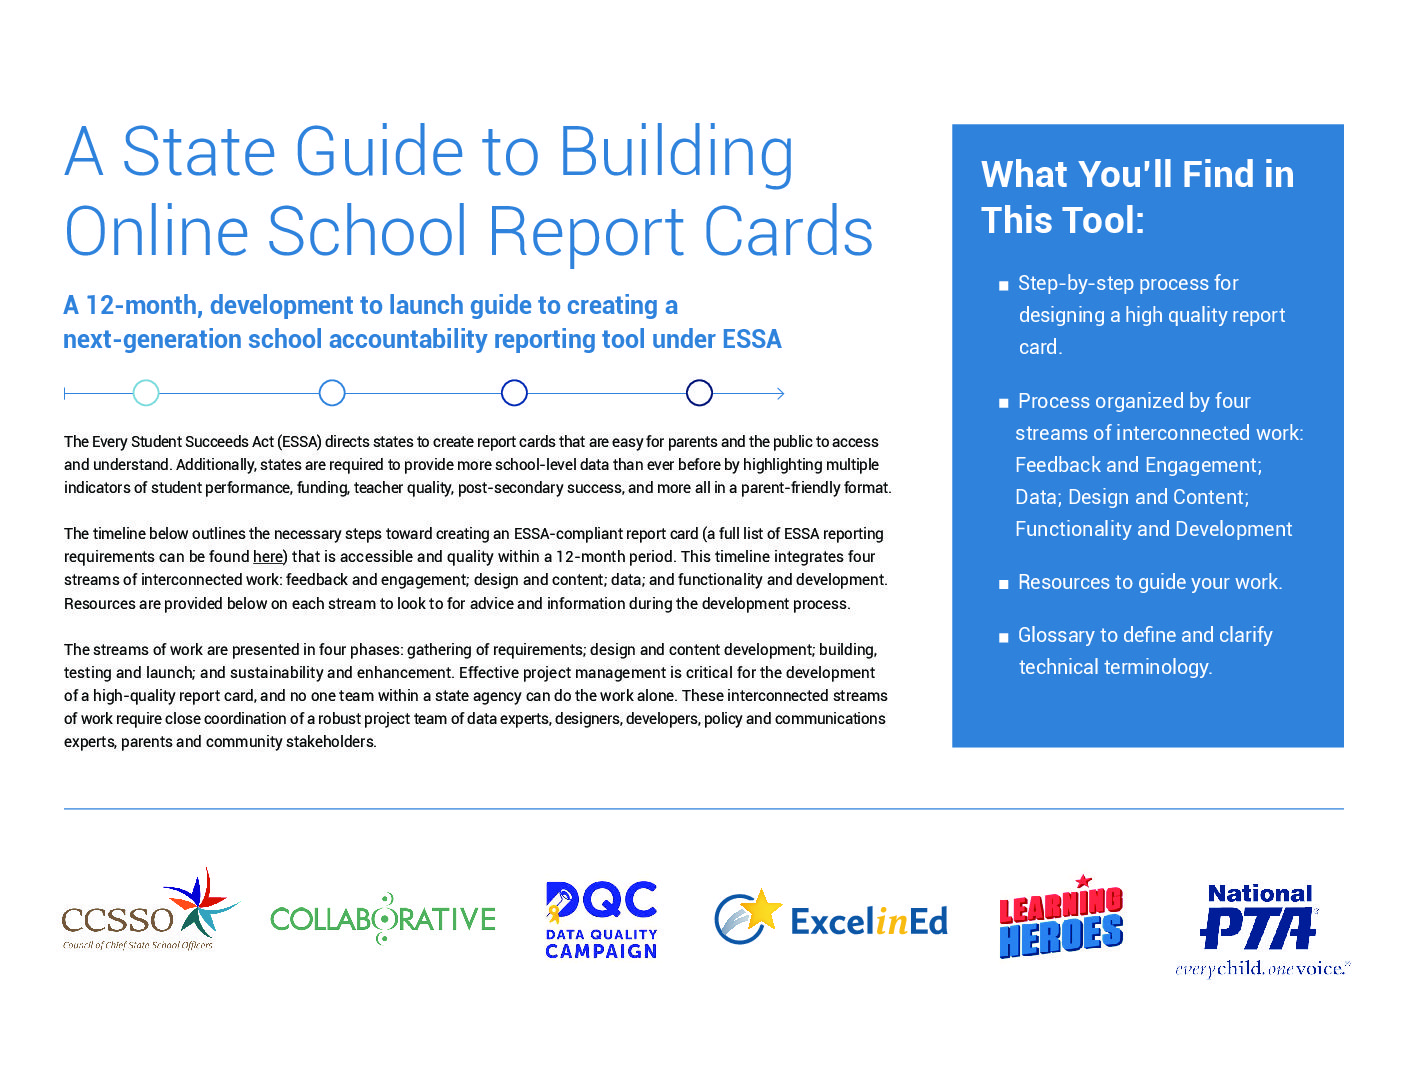 A State Guide to Building Online School Report Cards – May 2017>									 									</a> 									<a href=